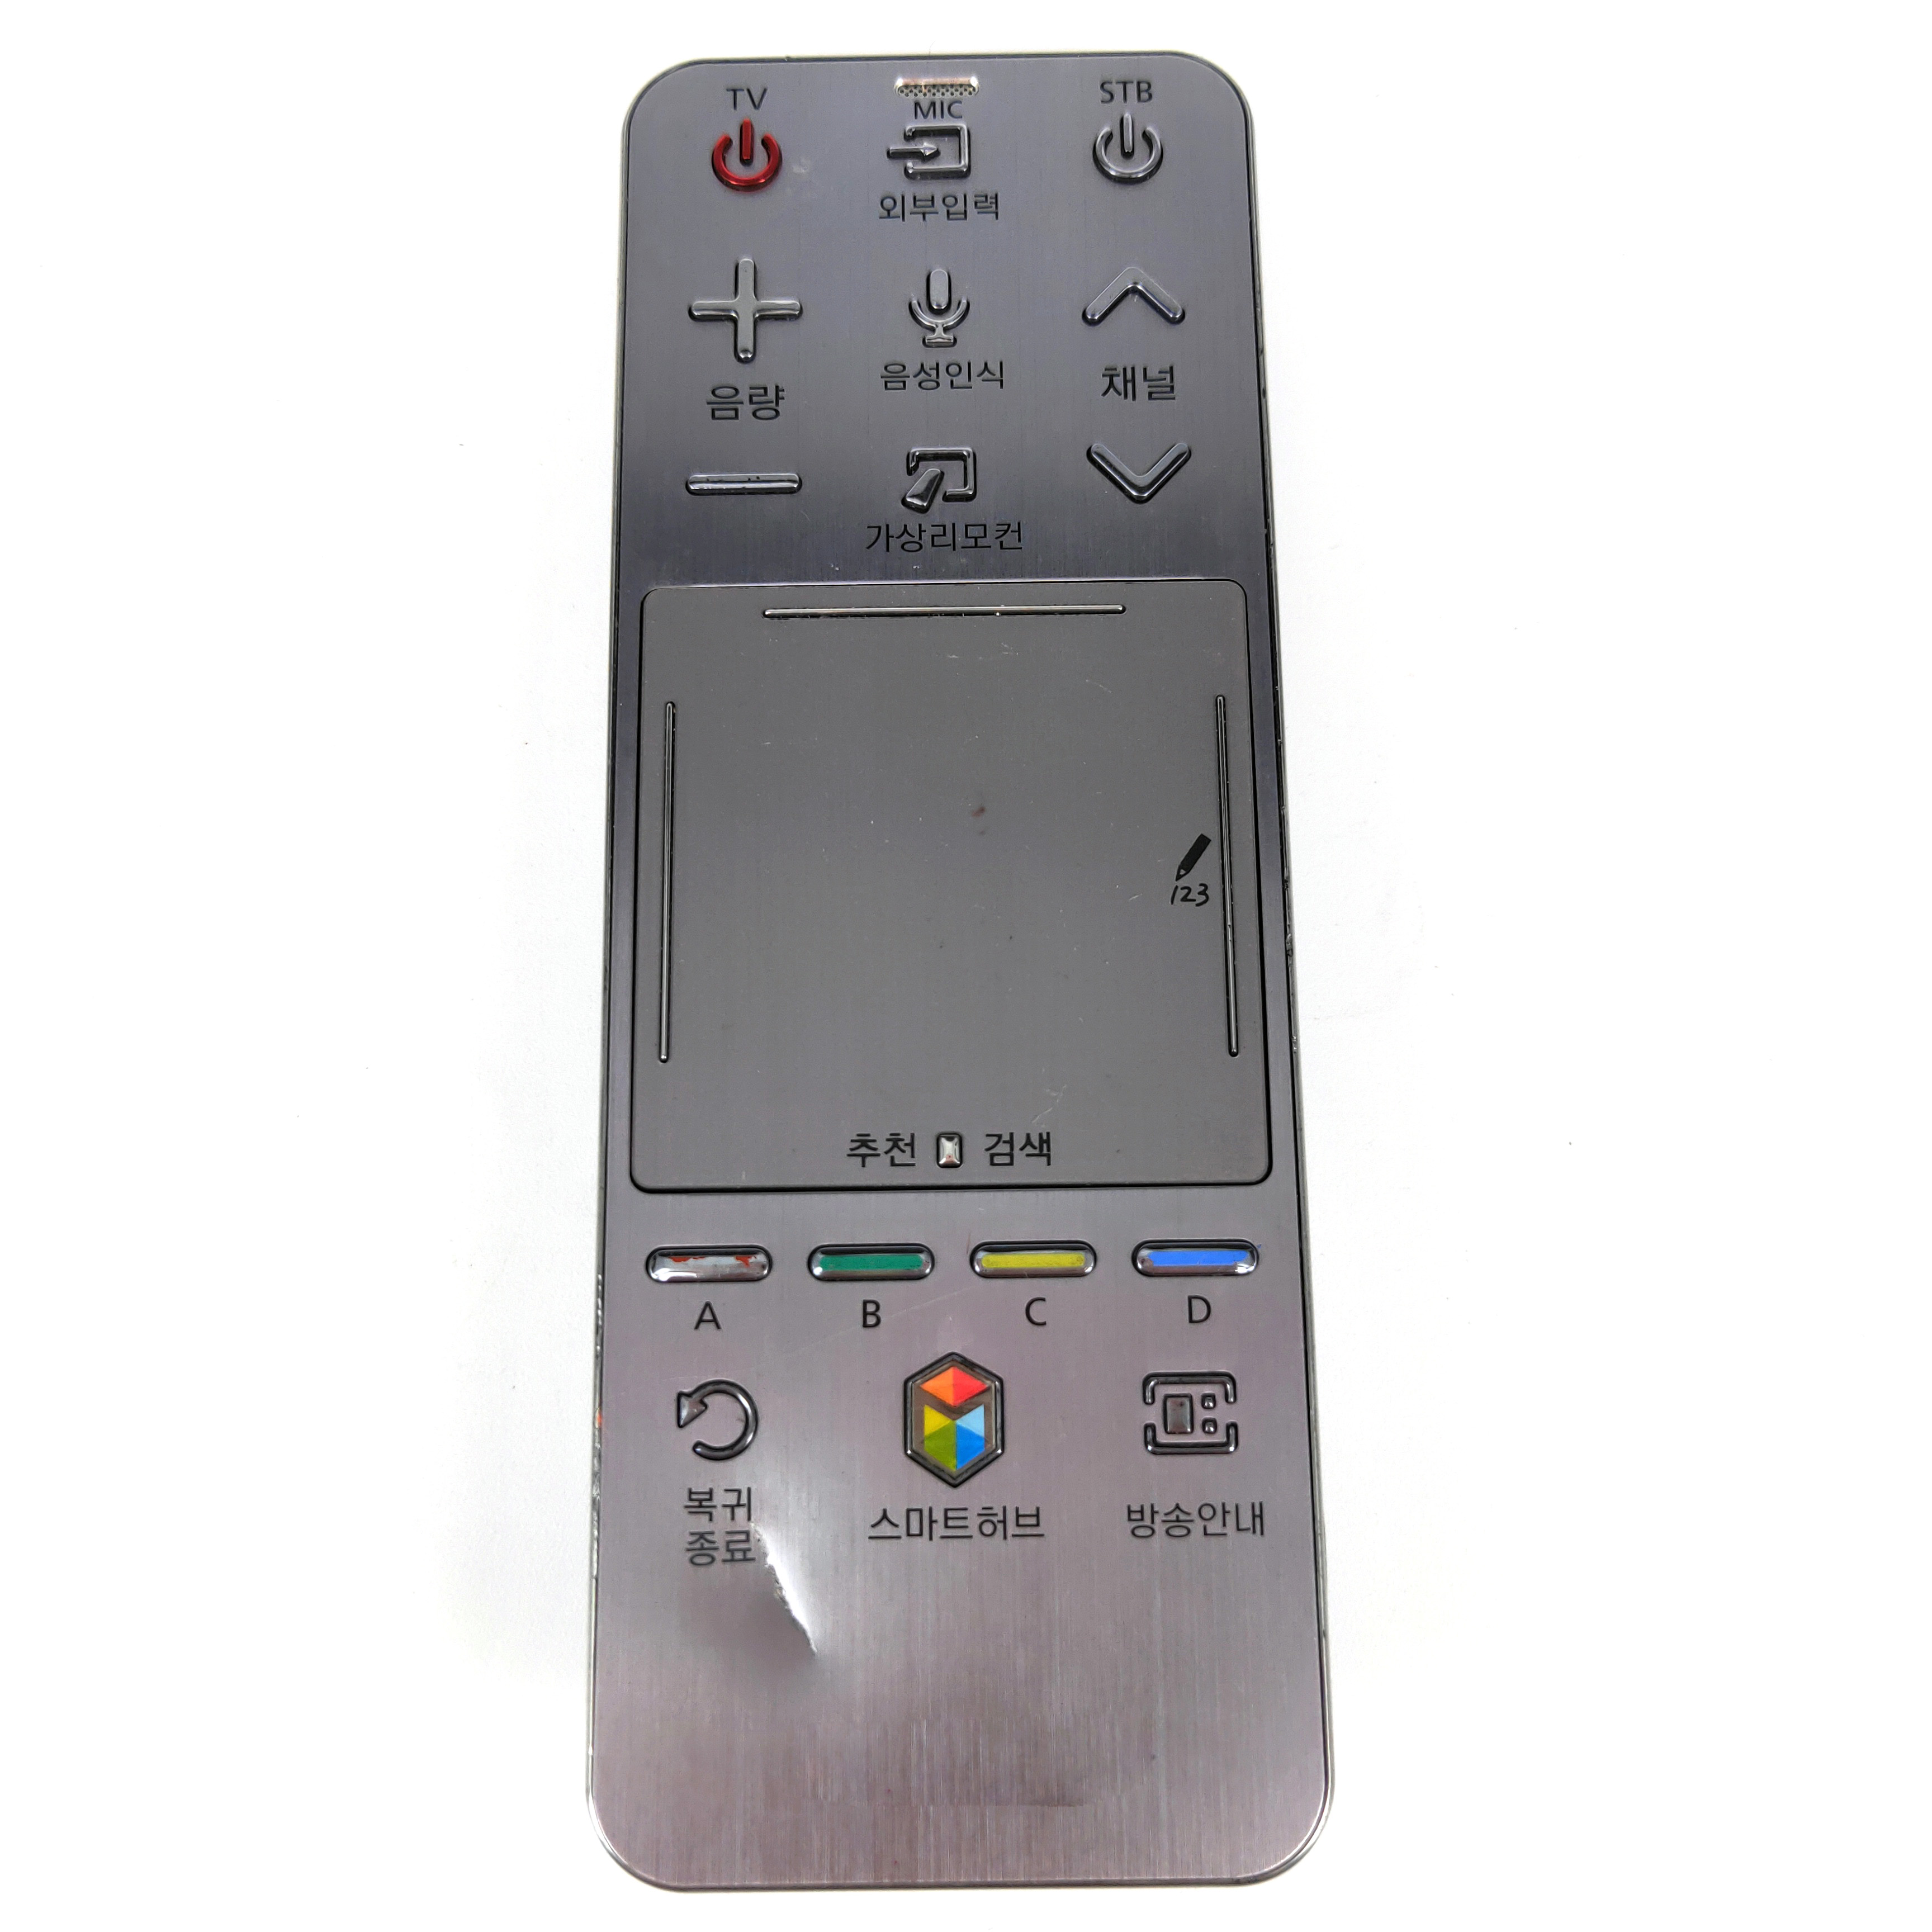 USED 90%NEW Original AA59-00757B FOR Samsung smart touch Remote control for Korean TV FernbedienungUSED 90%NEW Original AA59-00757B FOR Samsung smart touch Remote control for Korean TV Fernbedienung